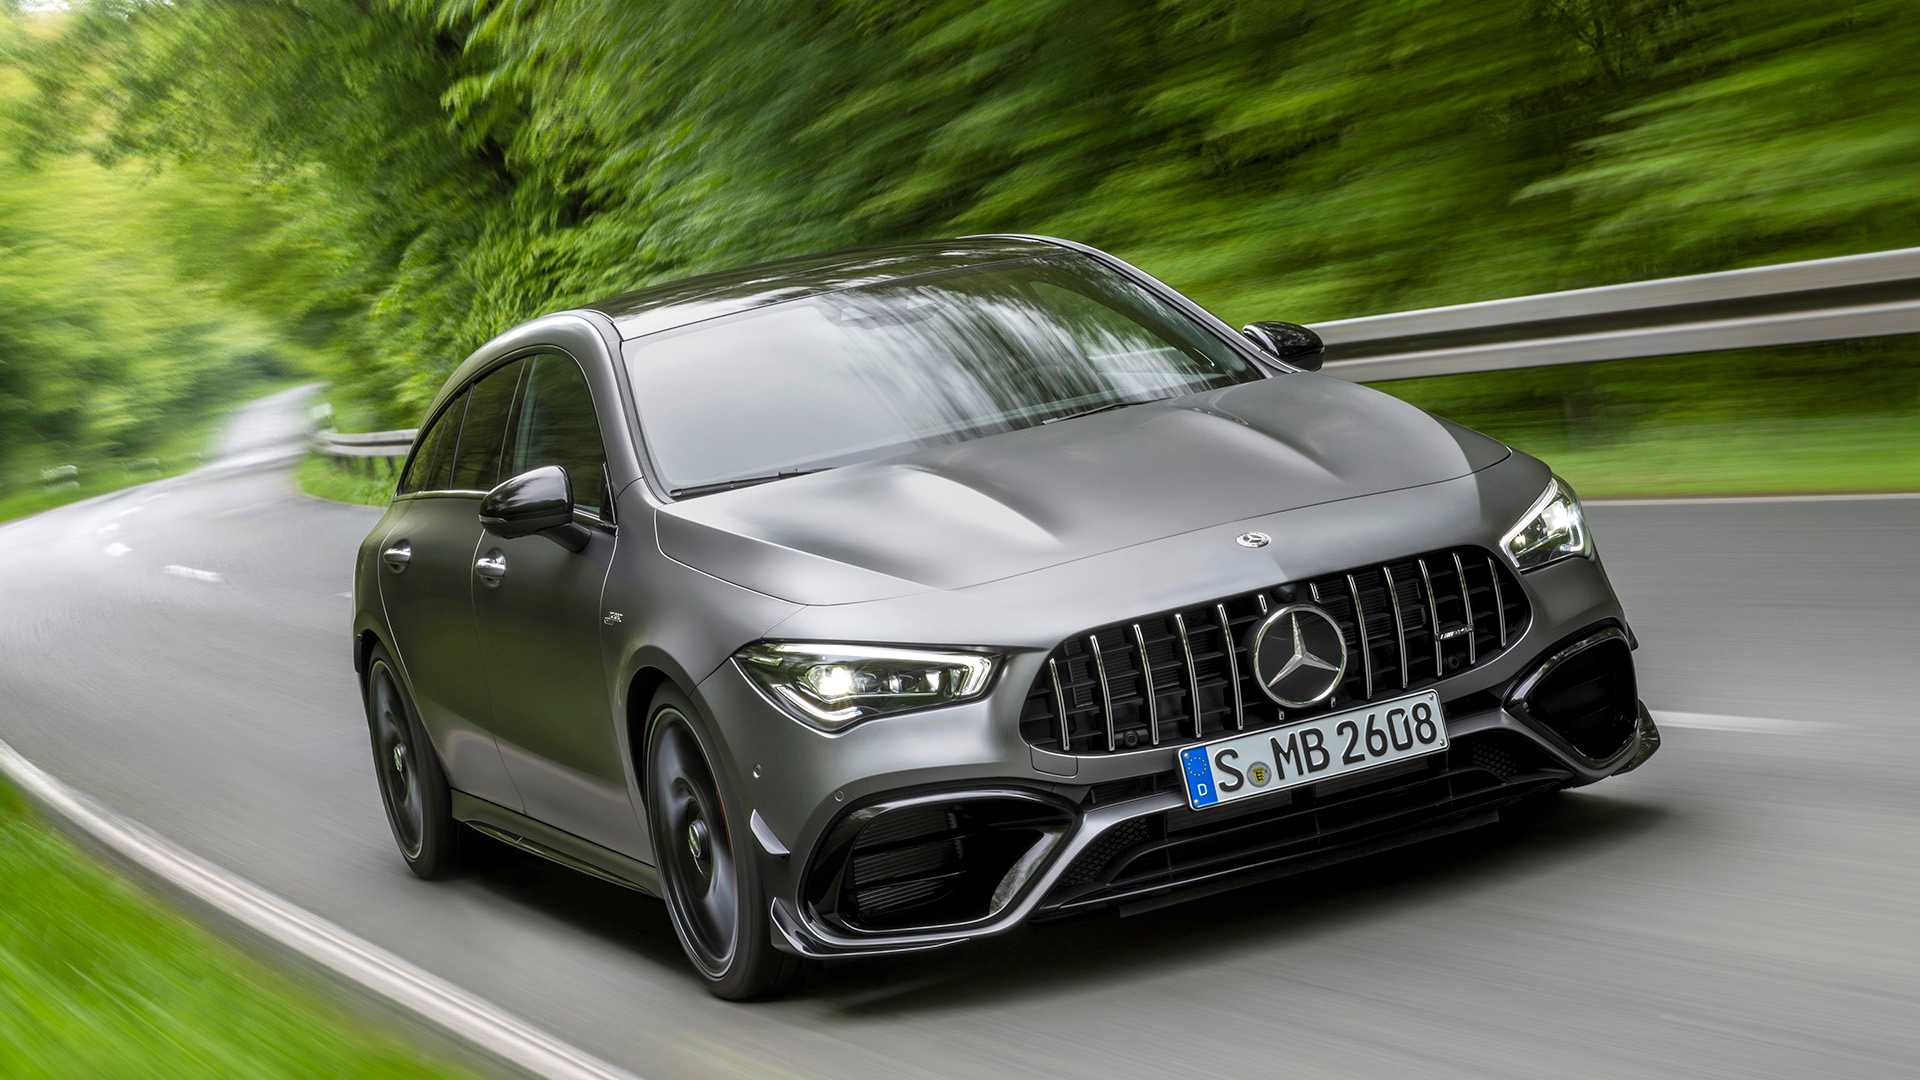 2020 Mercedes-AMG CLA 45 S 4MATIC+ Shooting Brake Front Wallpapers (4)